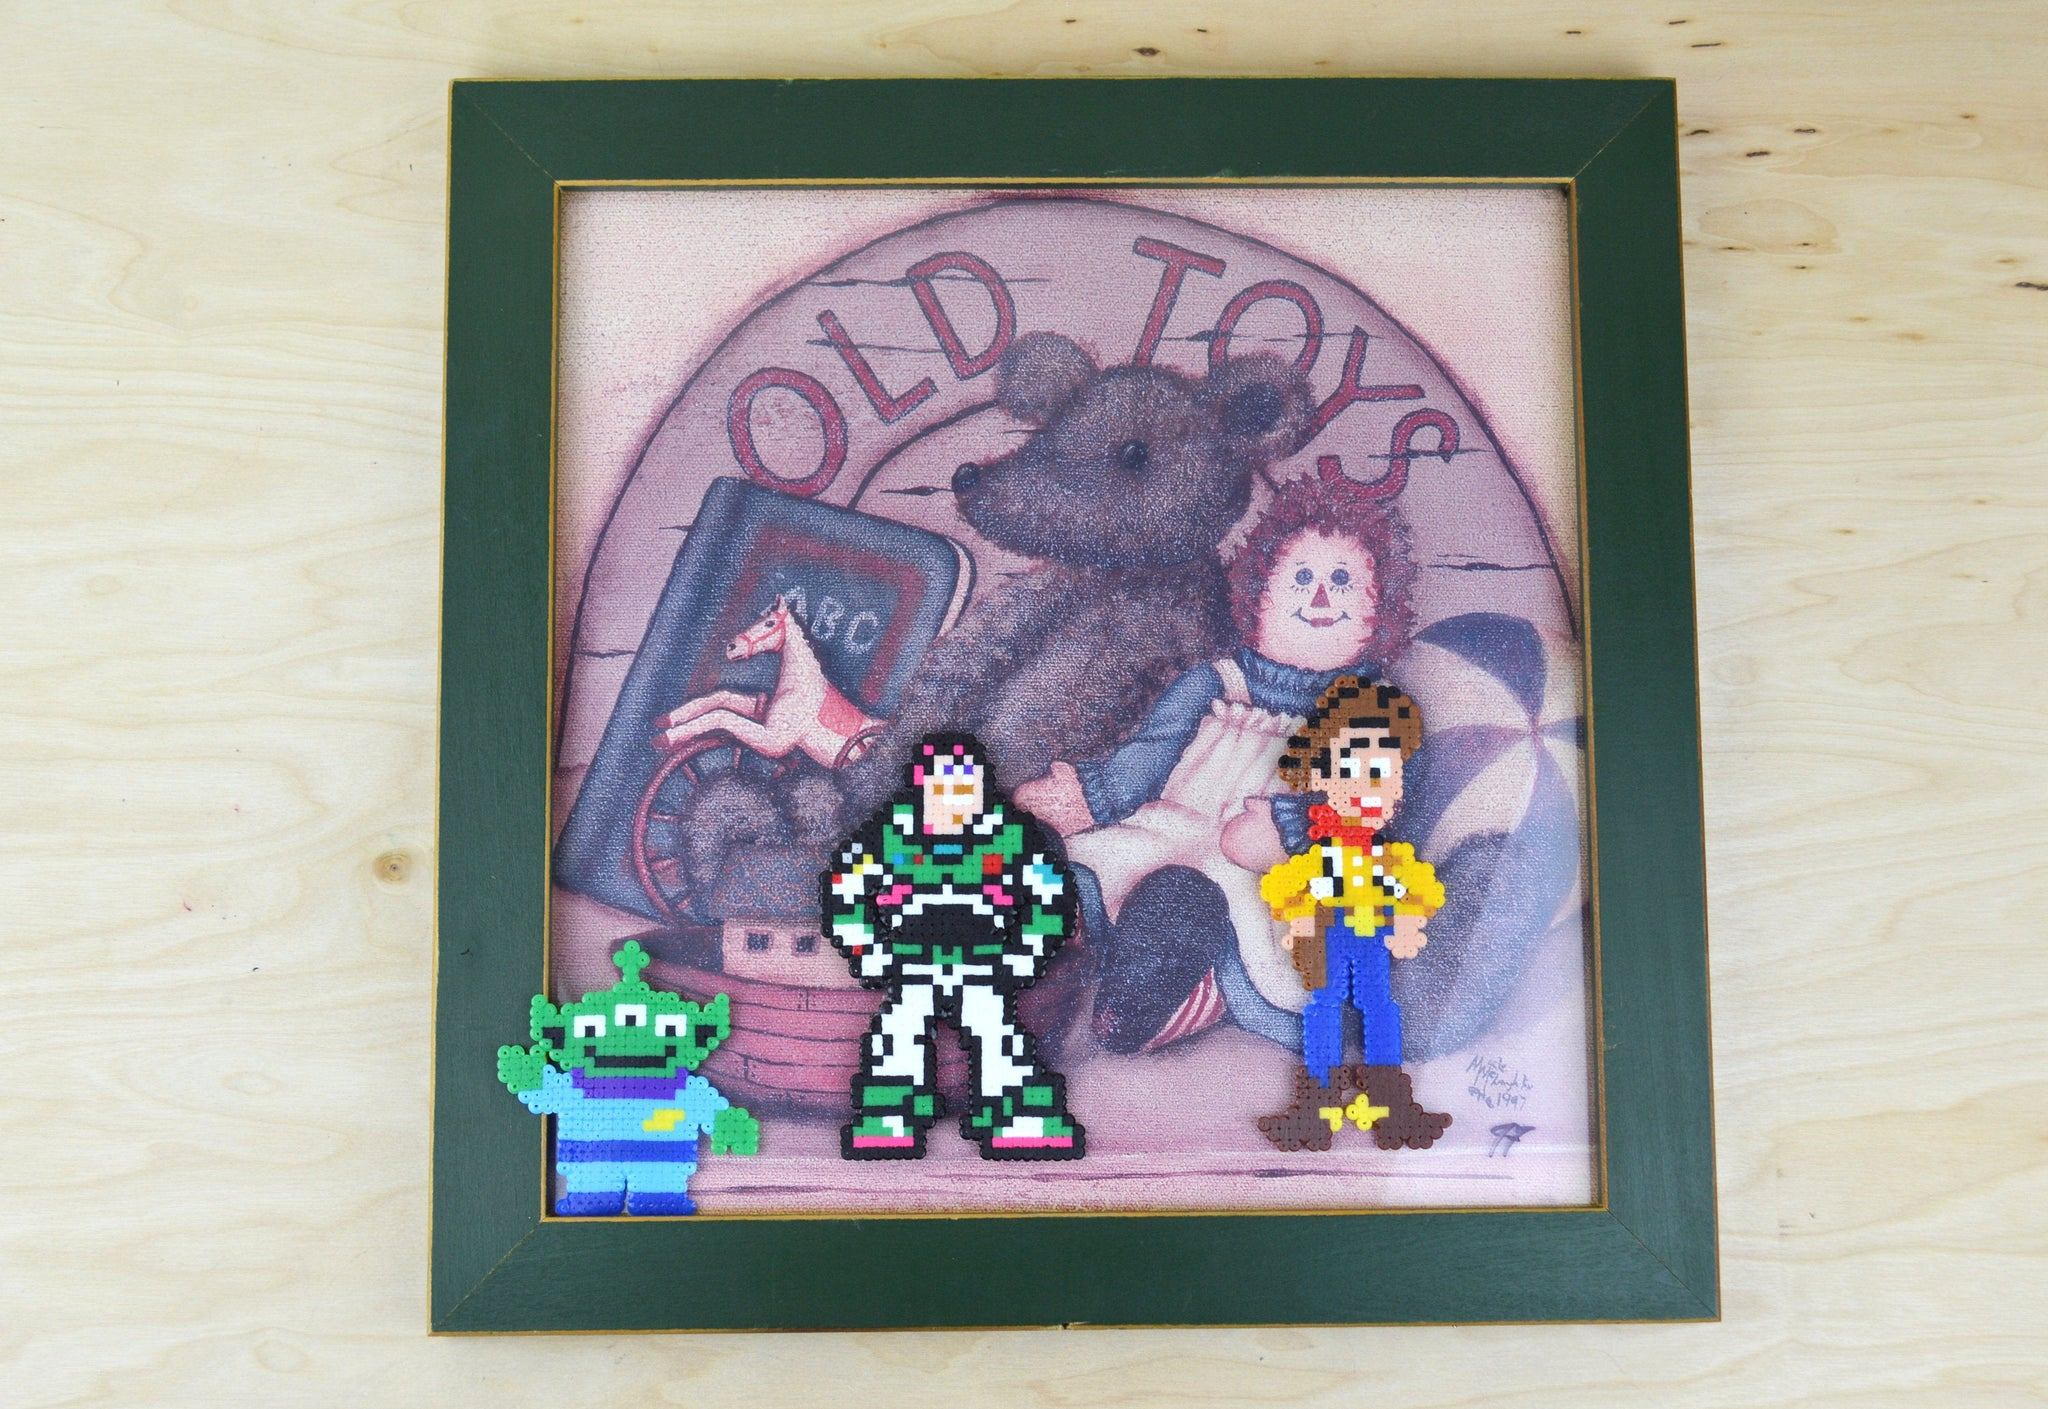 Toy Story Pixel art - Perler bead reclaimed art work alteration original artwork